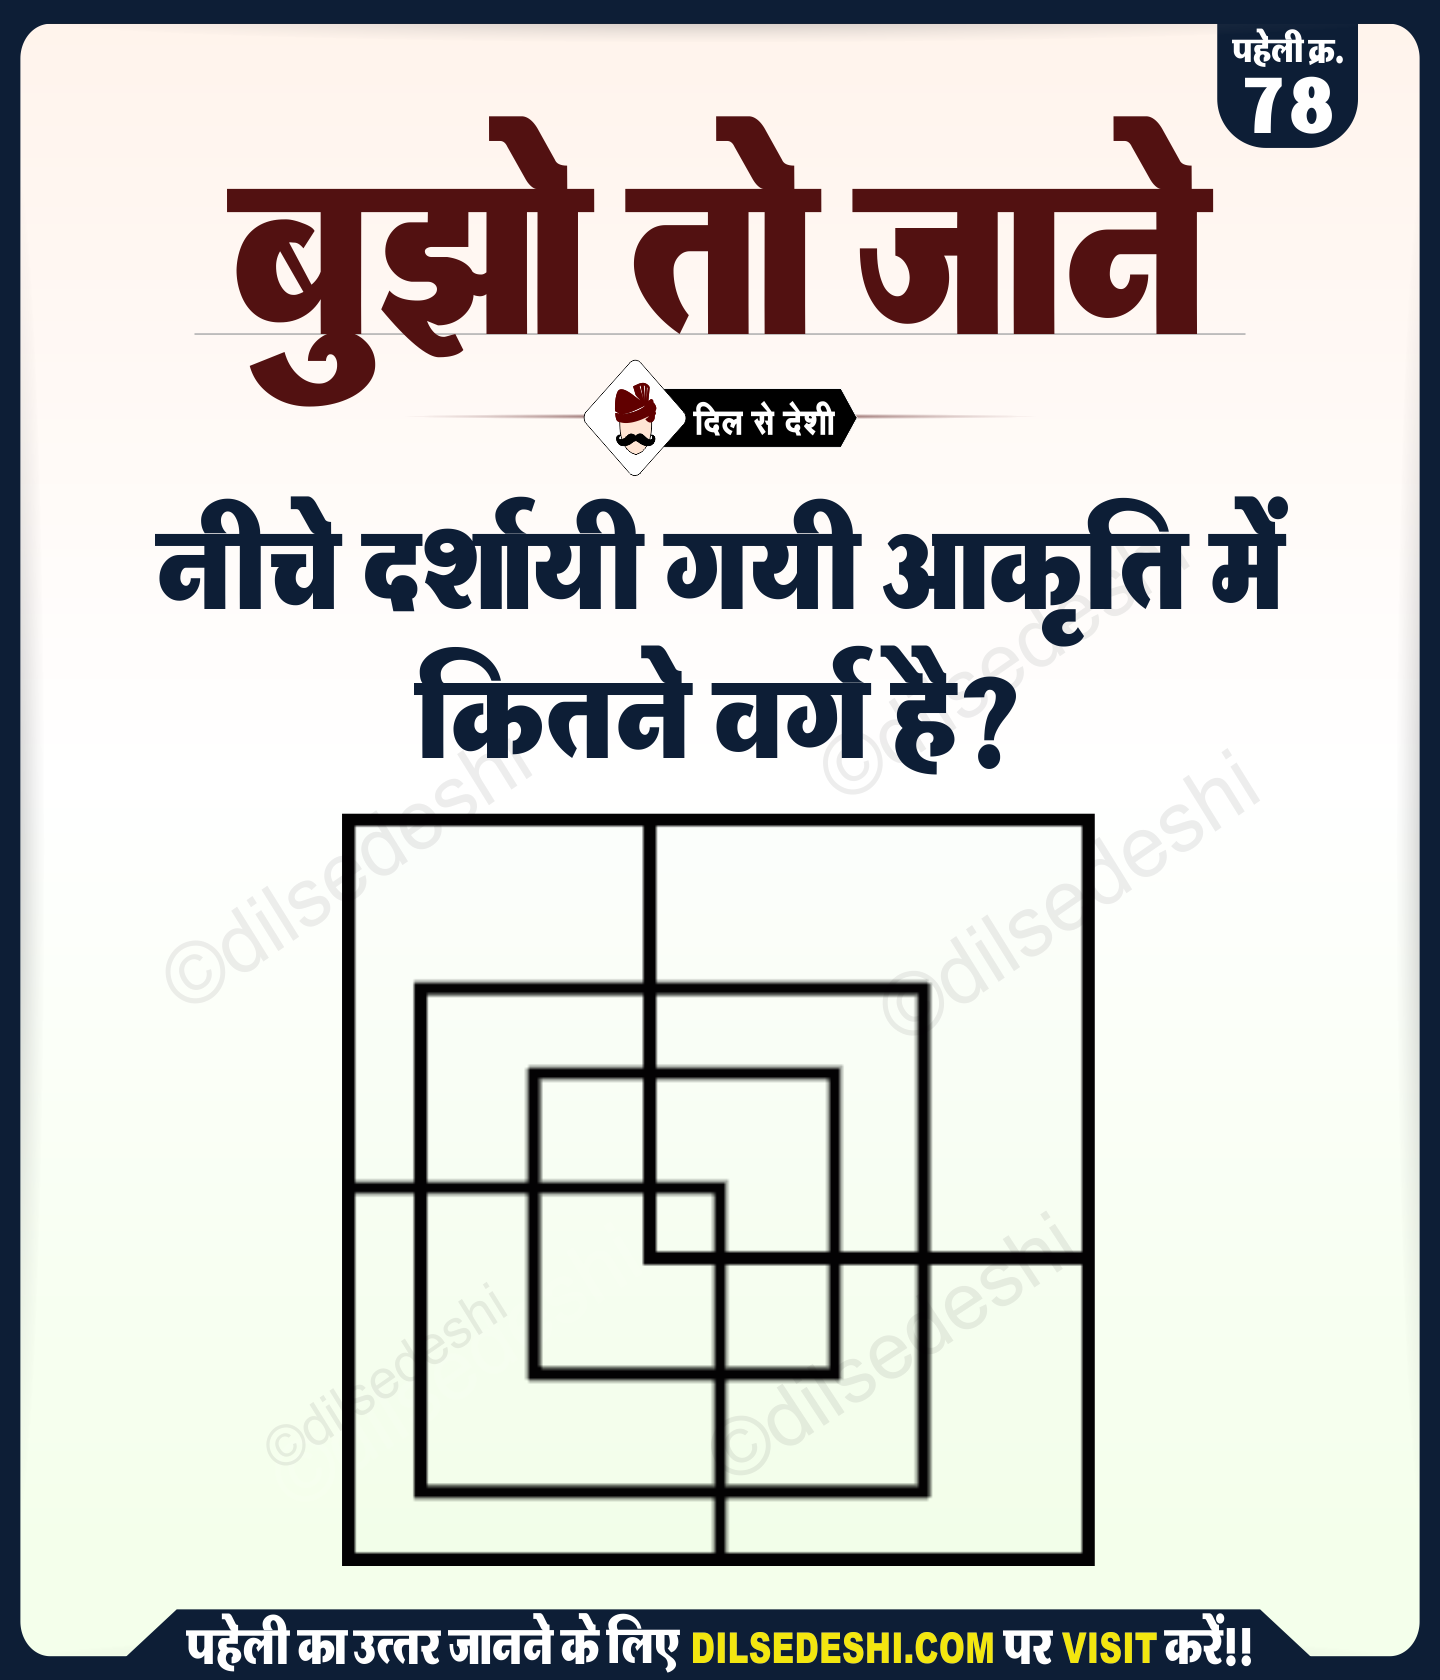 Logical puzzles Questions and Answers